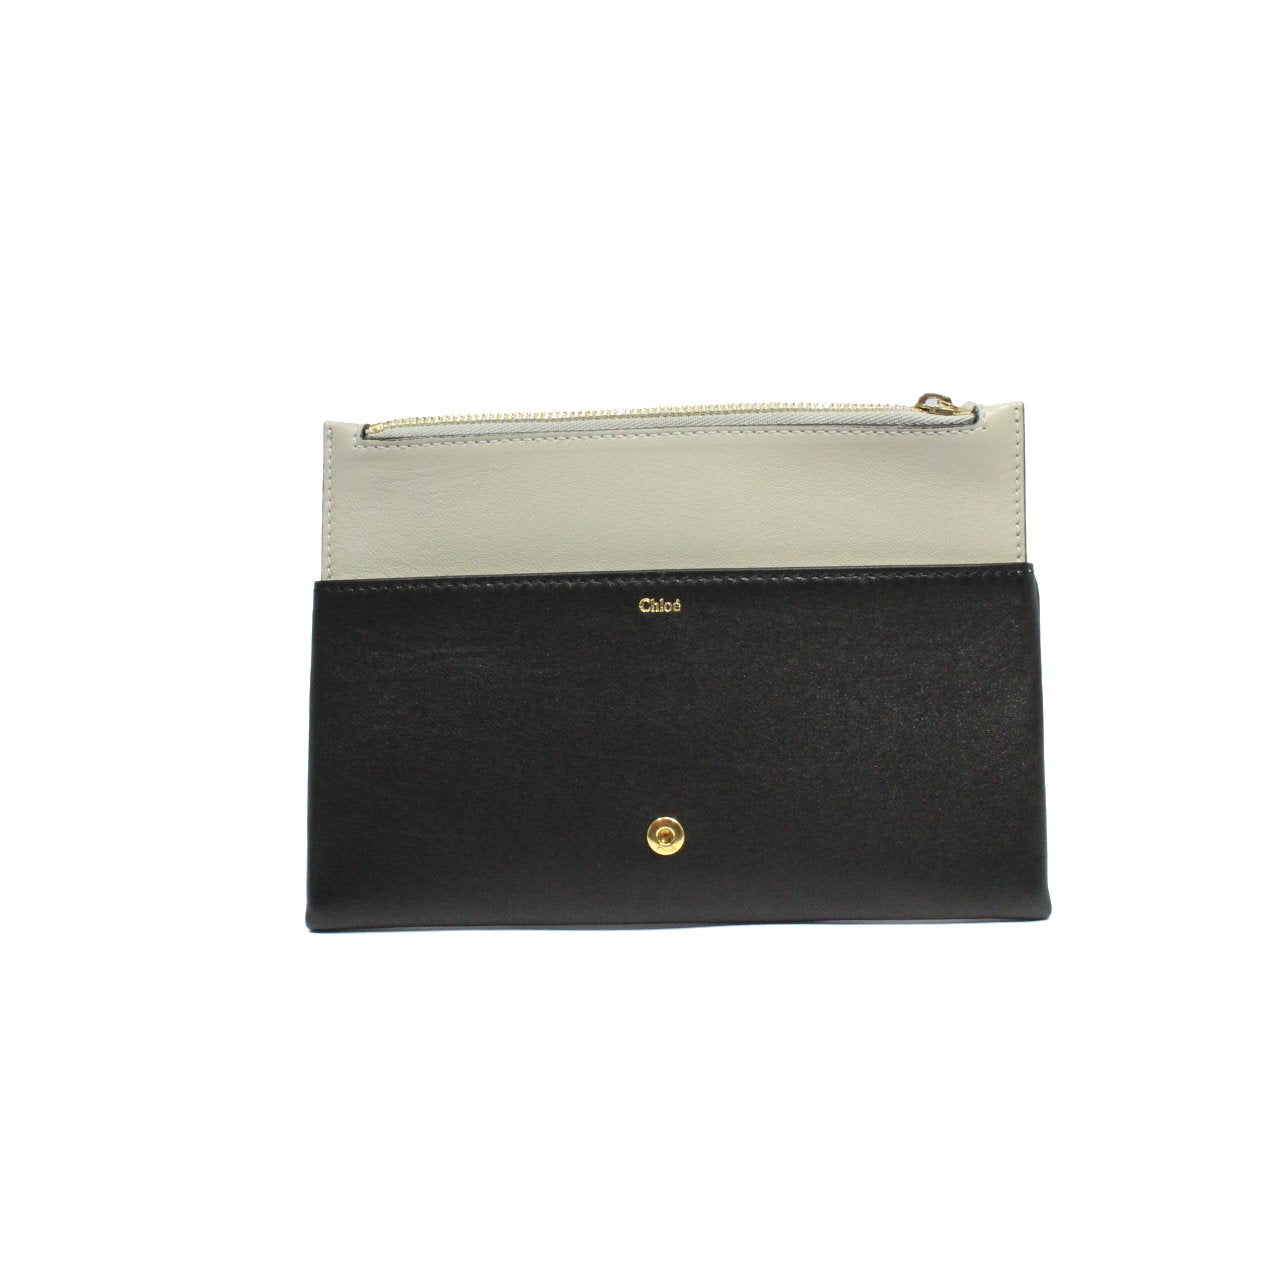 Chloe Fold-Over Classic Travel Wallet